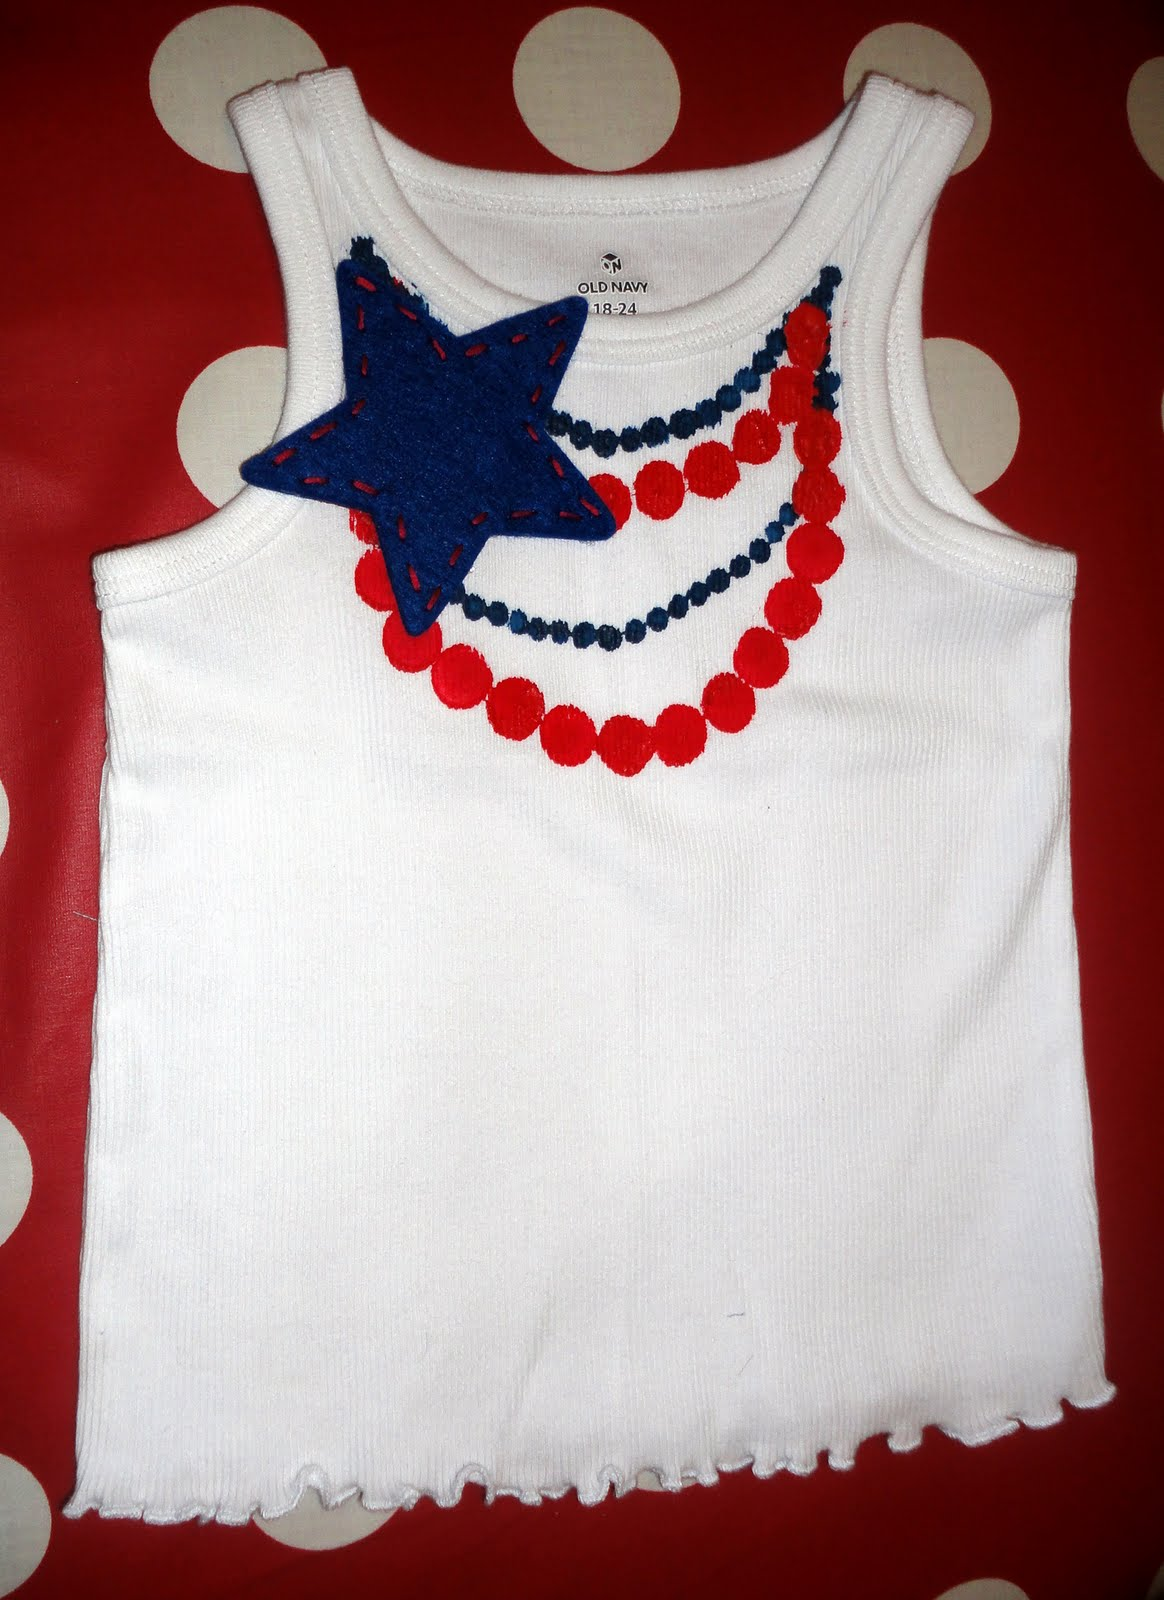 4th of july apparel walmart